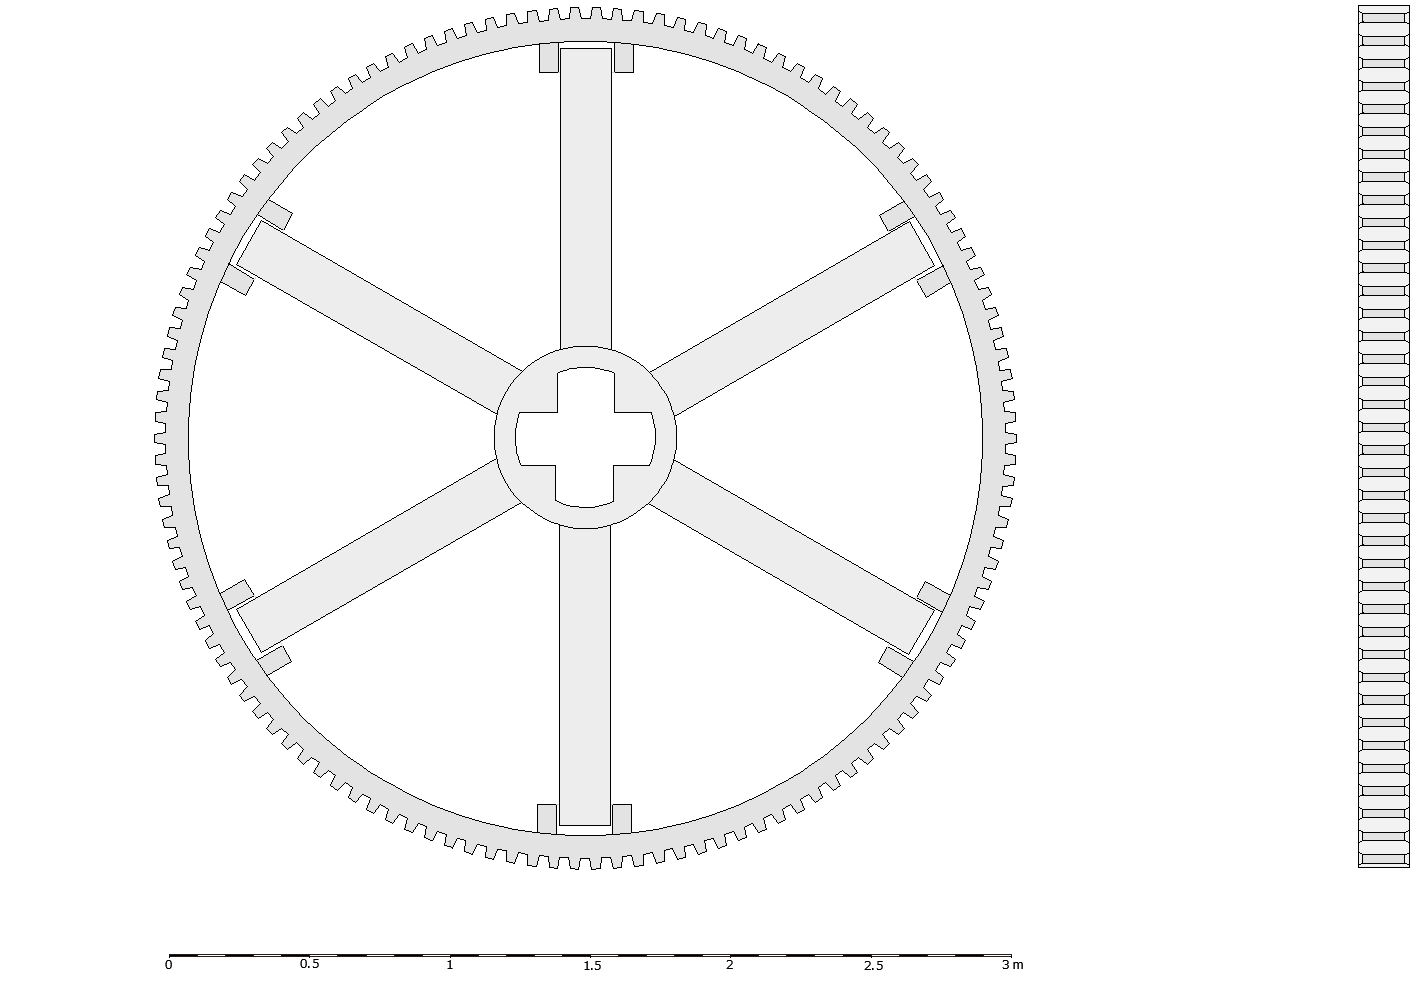 Monochrome reconstruction drawing of the flywheel. The image is divided into two parts. On the left shows the flywheel from the side, a large circle with stepped cog teeth. Inside, radiating from a cross-shaped central hub, are six spokes fitting into rectangular slots in the outer wheel rim. To the right of this is the wheel viewed from the front, a thin drawing showing the teeth and estimated thickness of the wheel. This demonstrates how this was part of a gear mechanism.